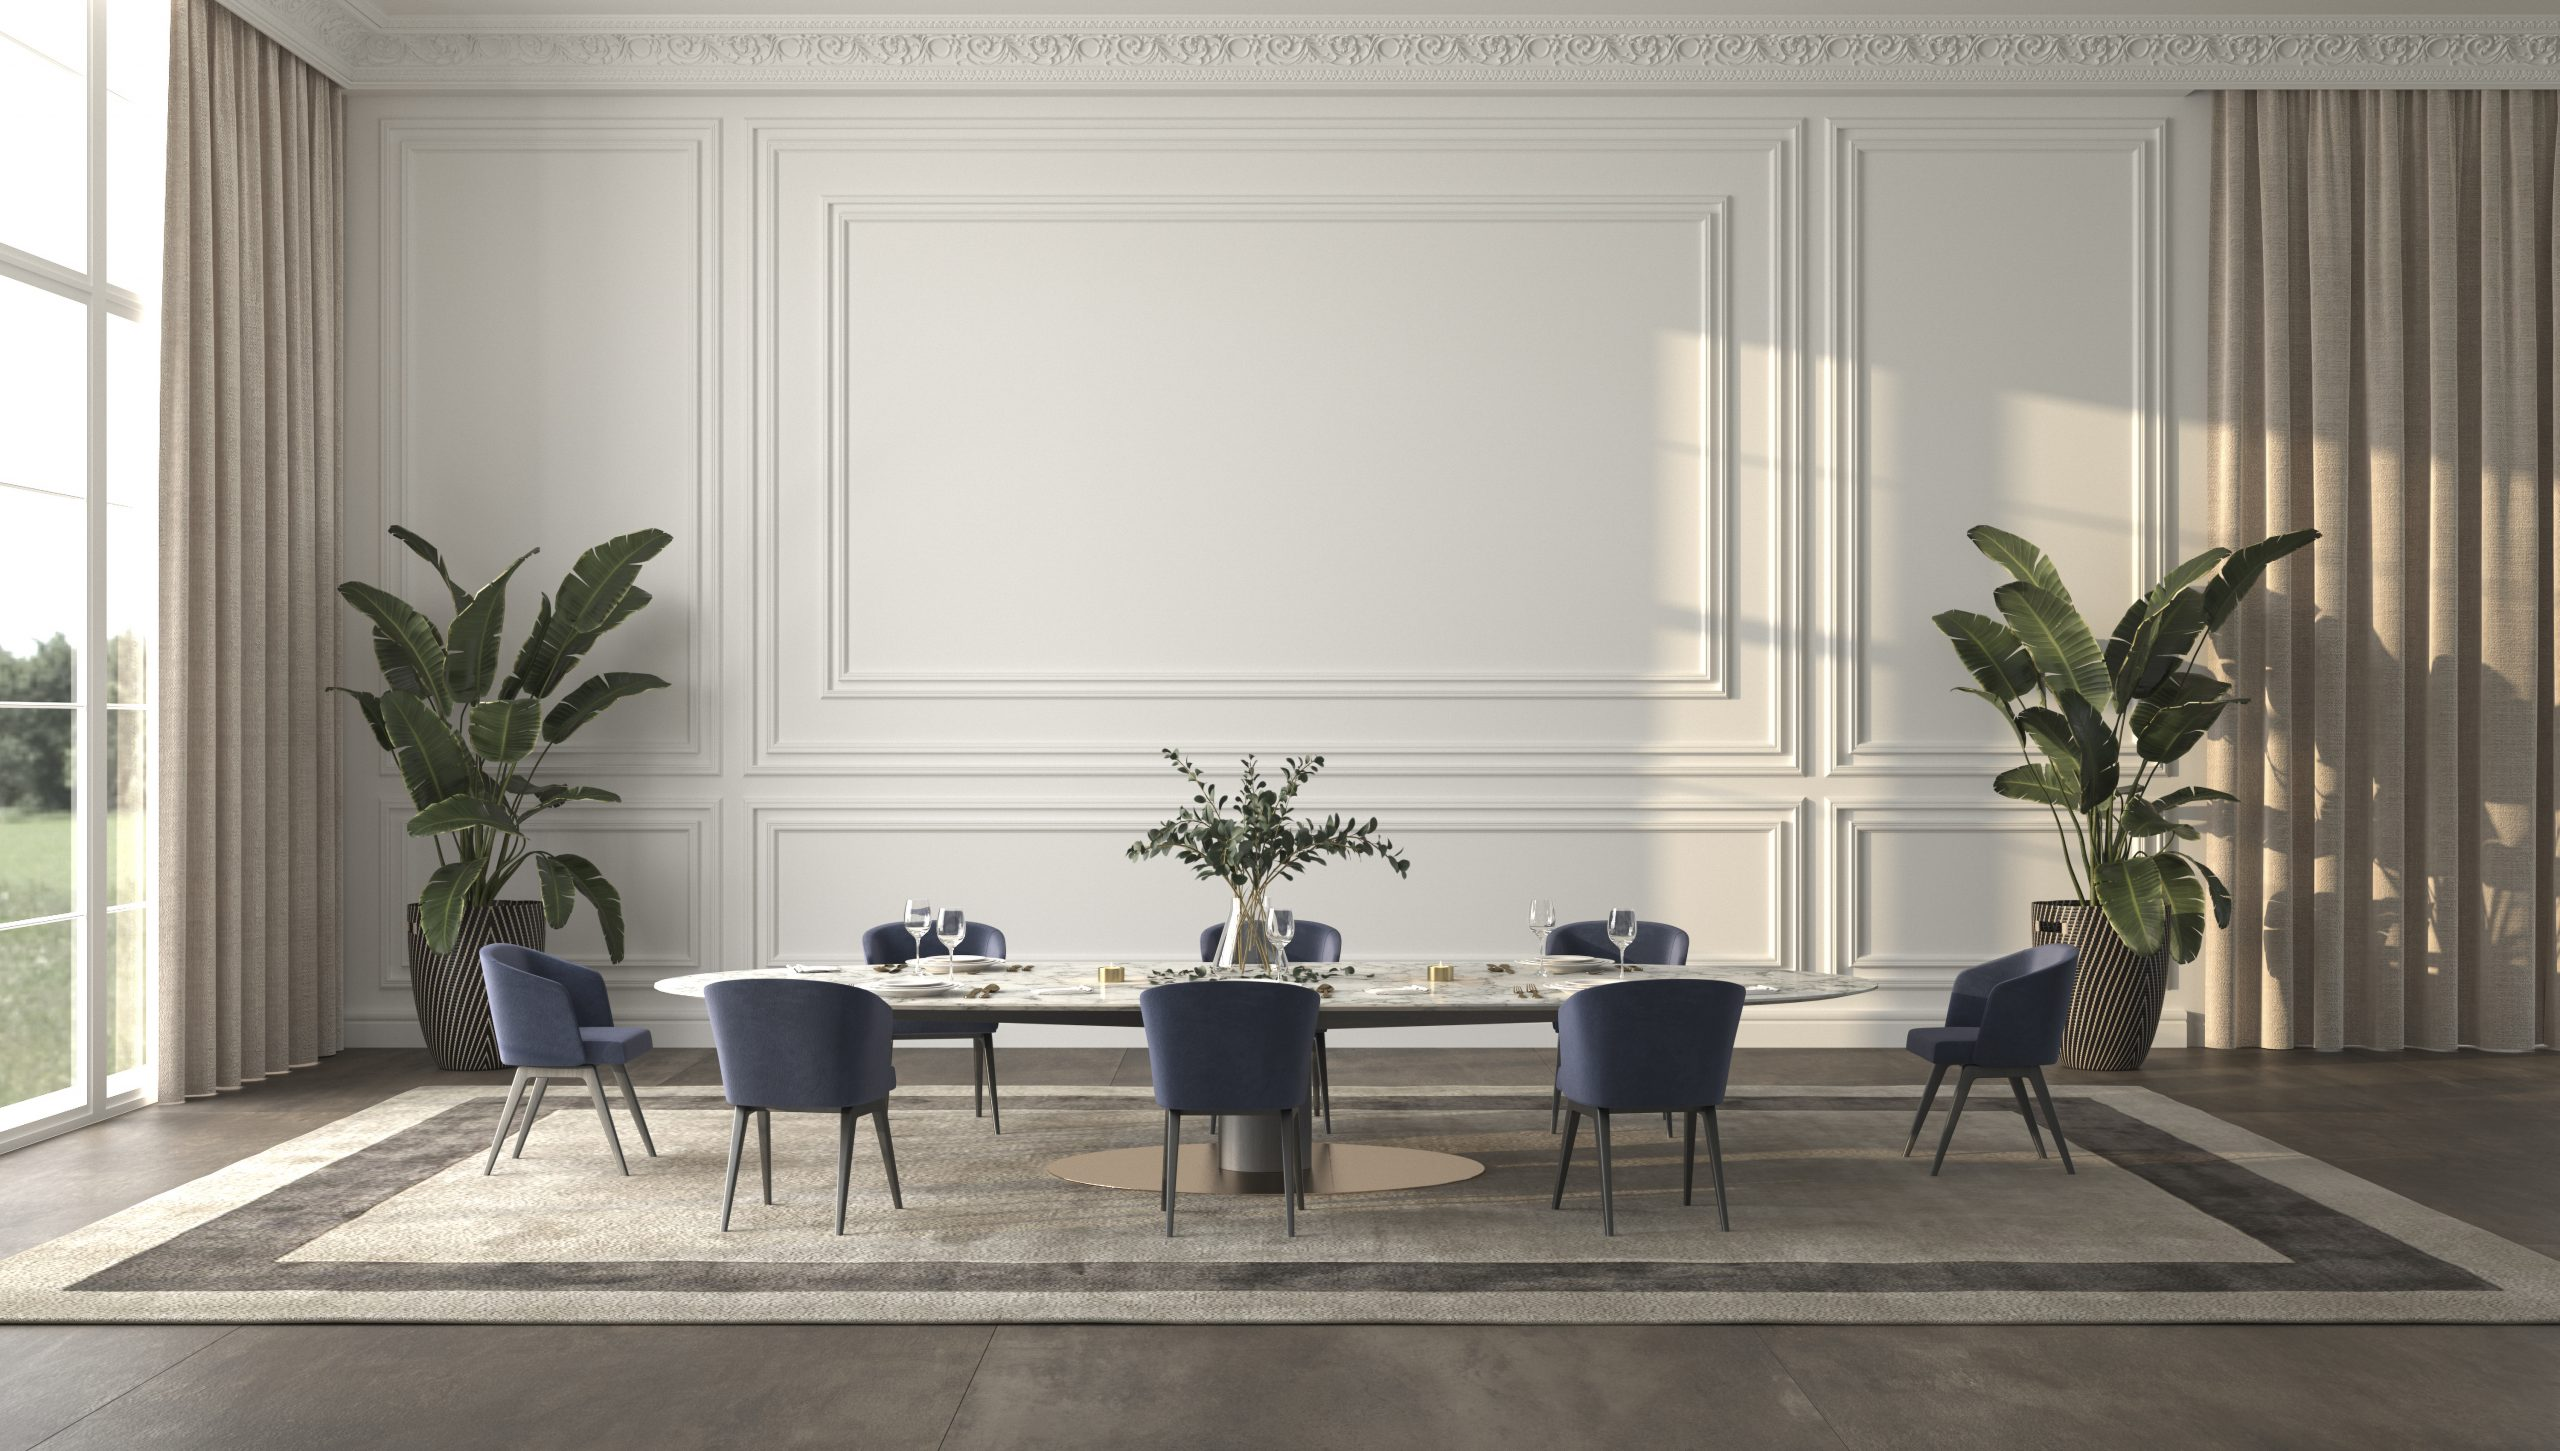 Luxury bright dining room with sun light and nature view background. Large windows, classic panels wall mock up, table with service and plants. Elegant 3d render illustration beige interior design.